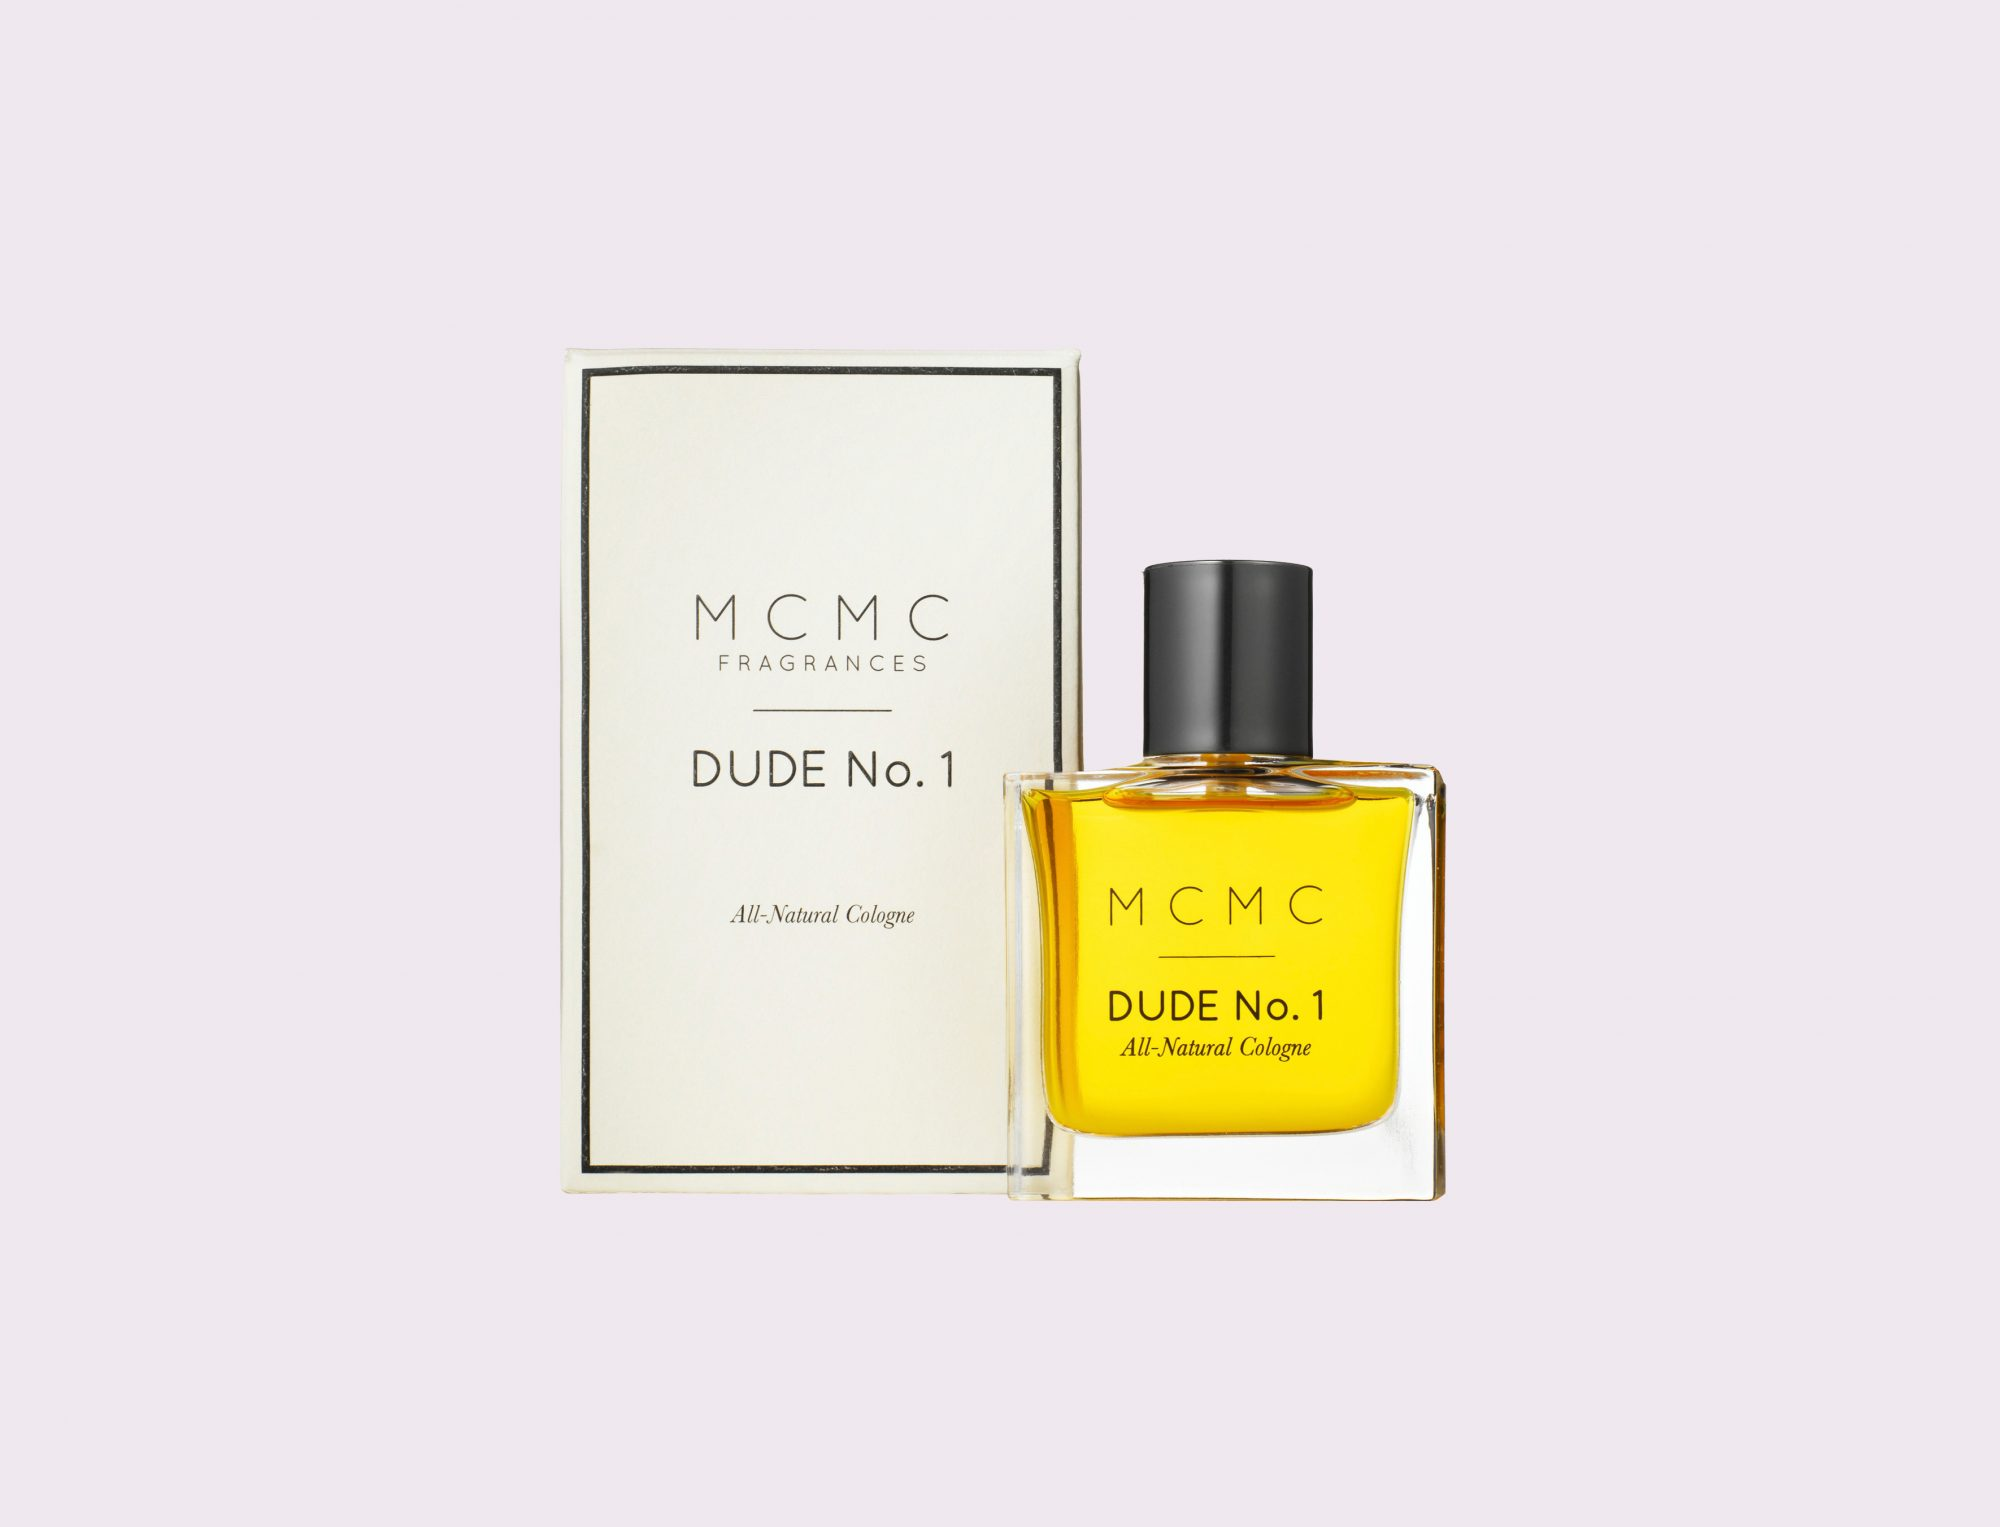 MCMC Fragrances Due No. 1 box and bottle